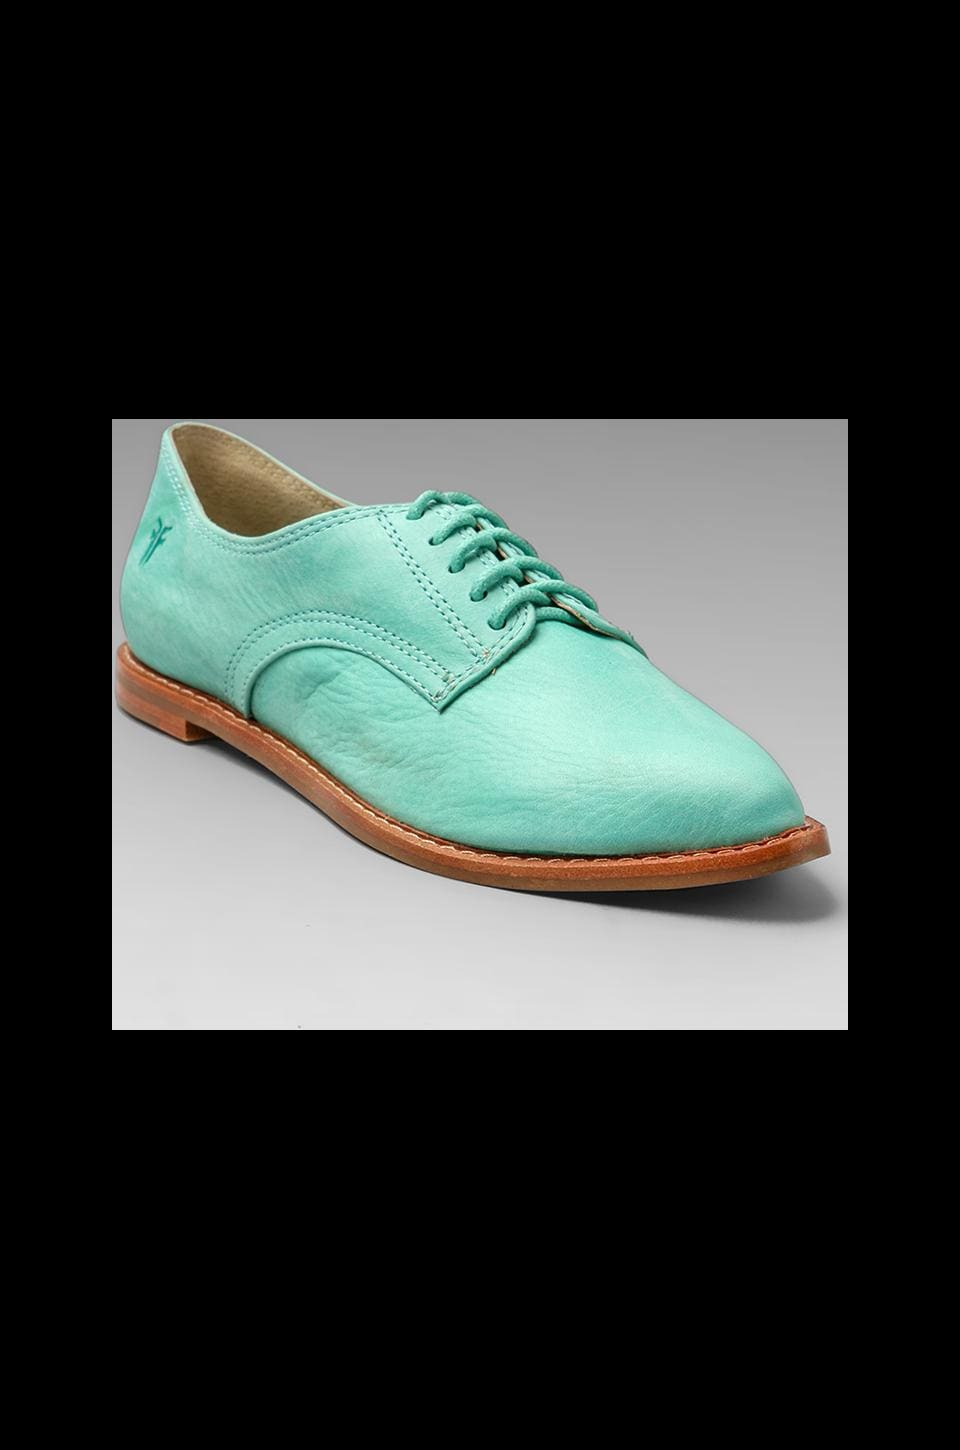 Frye Delia Oxford in Mint